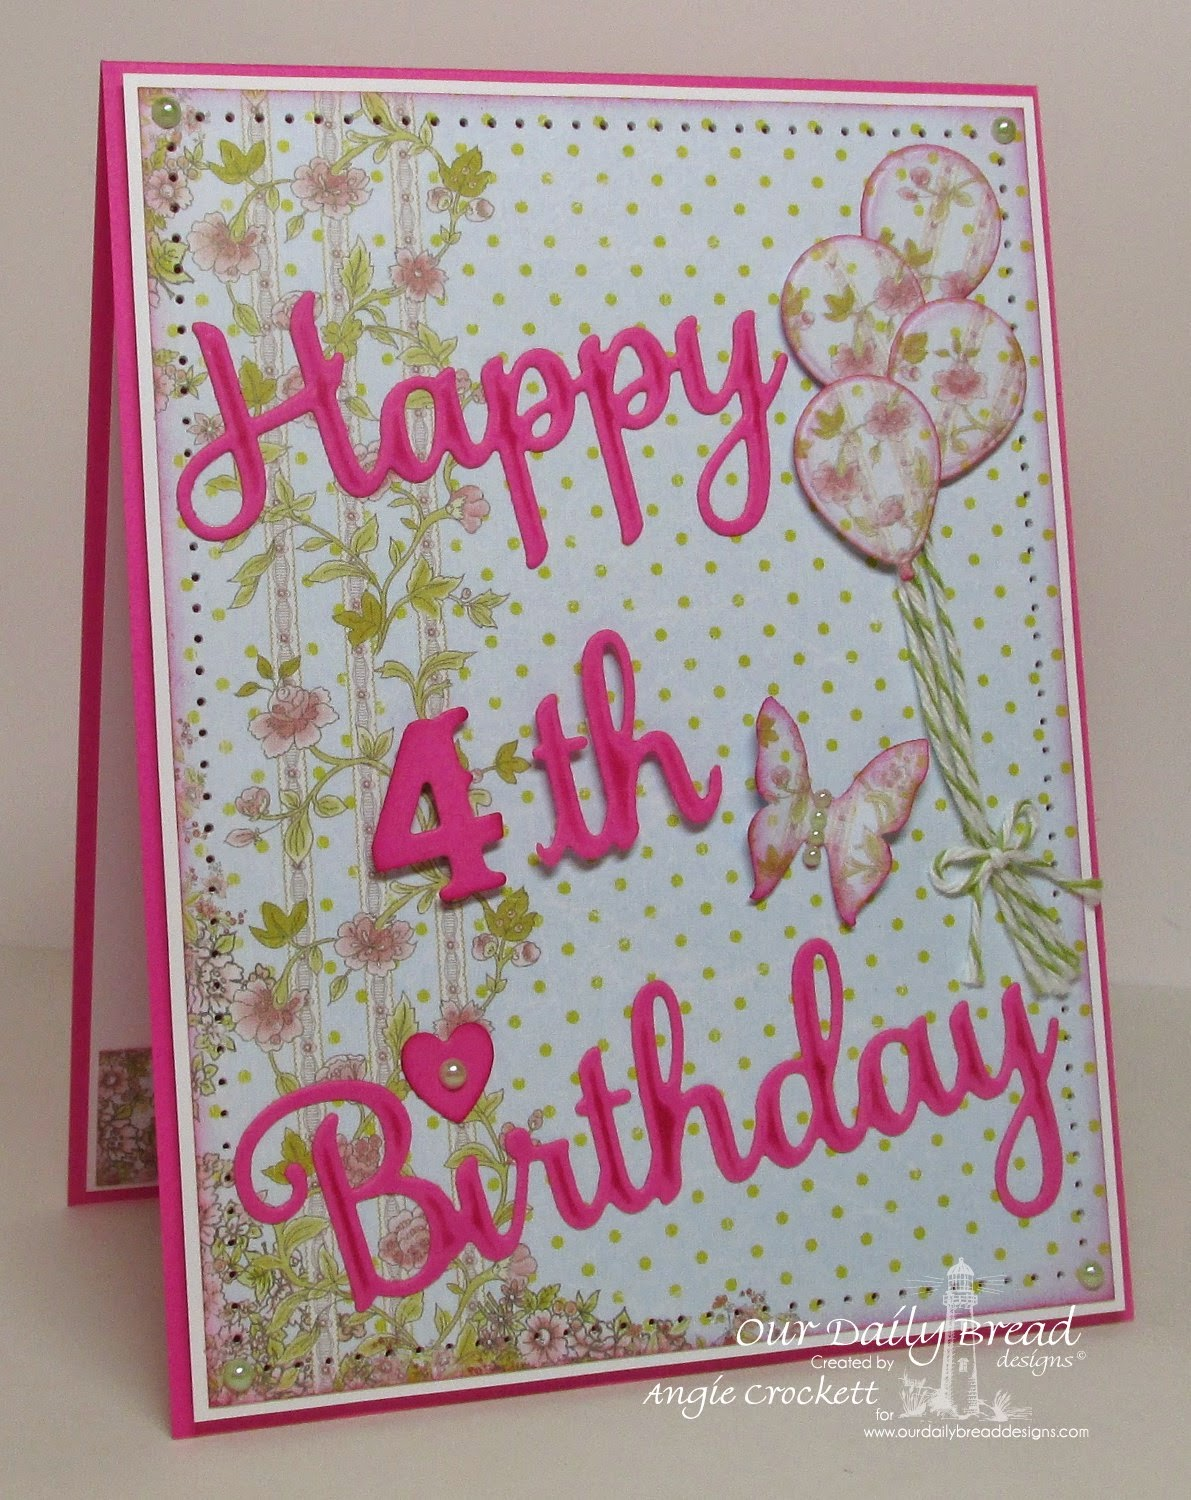 ODBD Custom Happy Birthday Dies, ODBD Custom Mini Tags Dies, Card Designer Angie Crockett